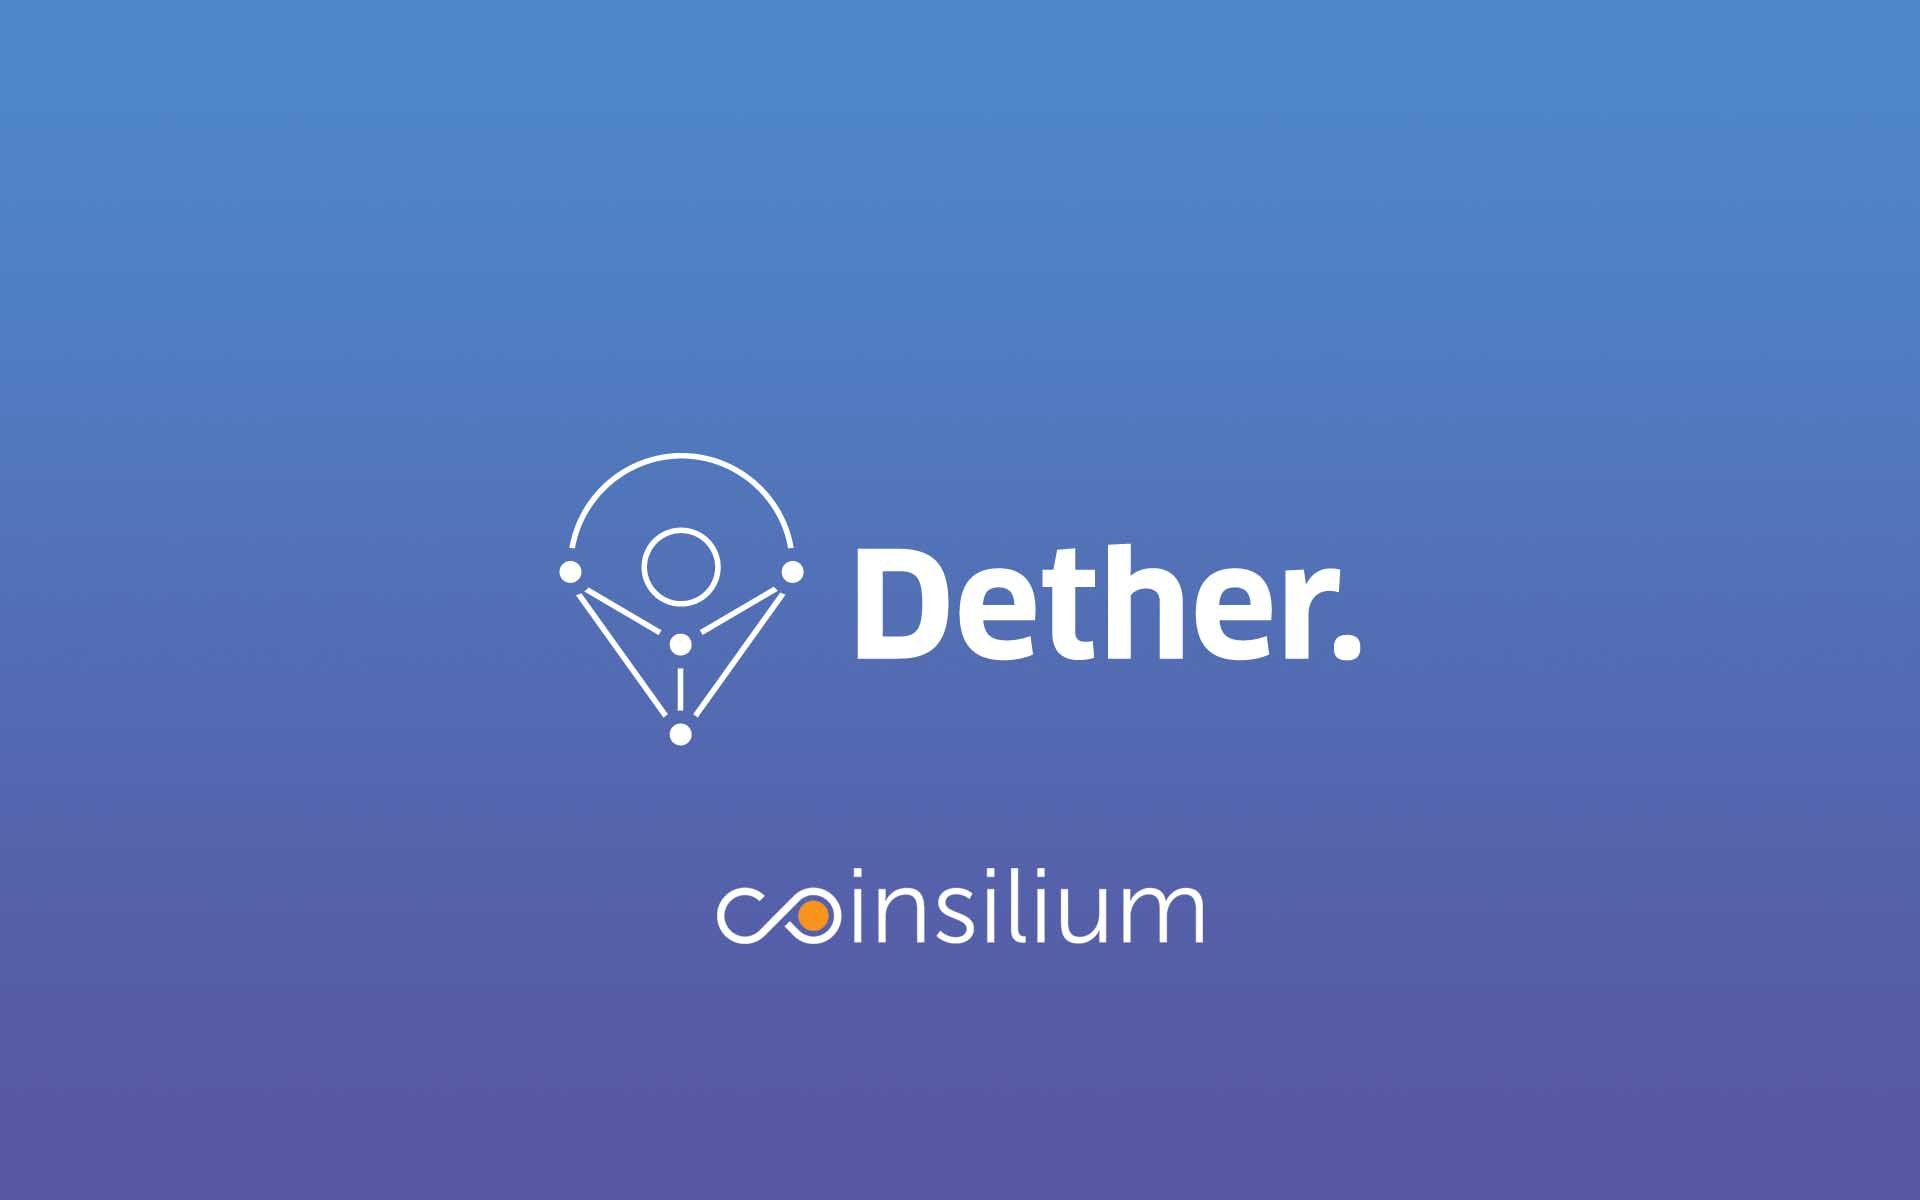 Coinsilium Advisory Services' Client, Dether Commences Public Token Generating Event